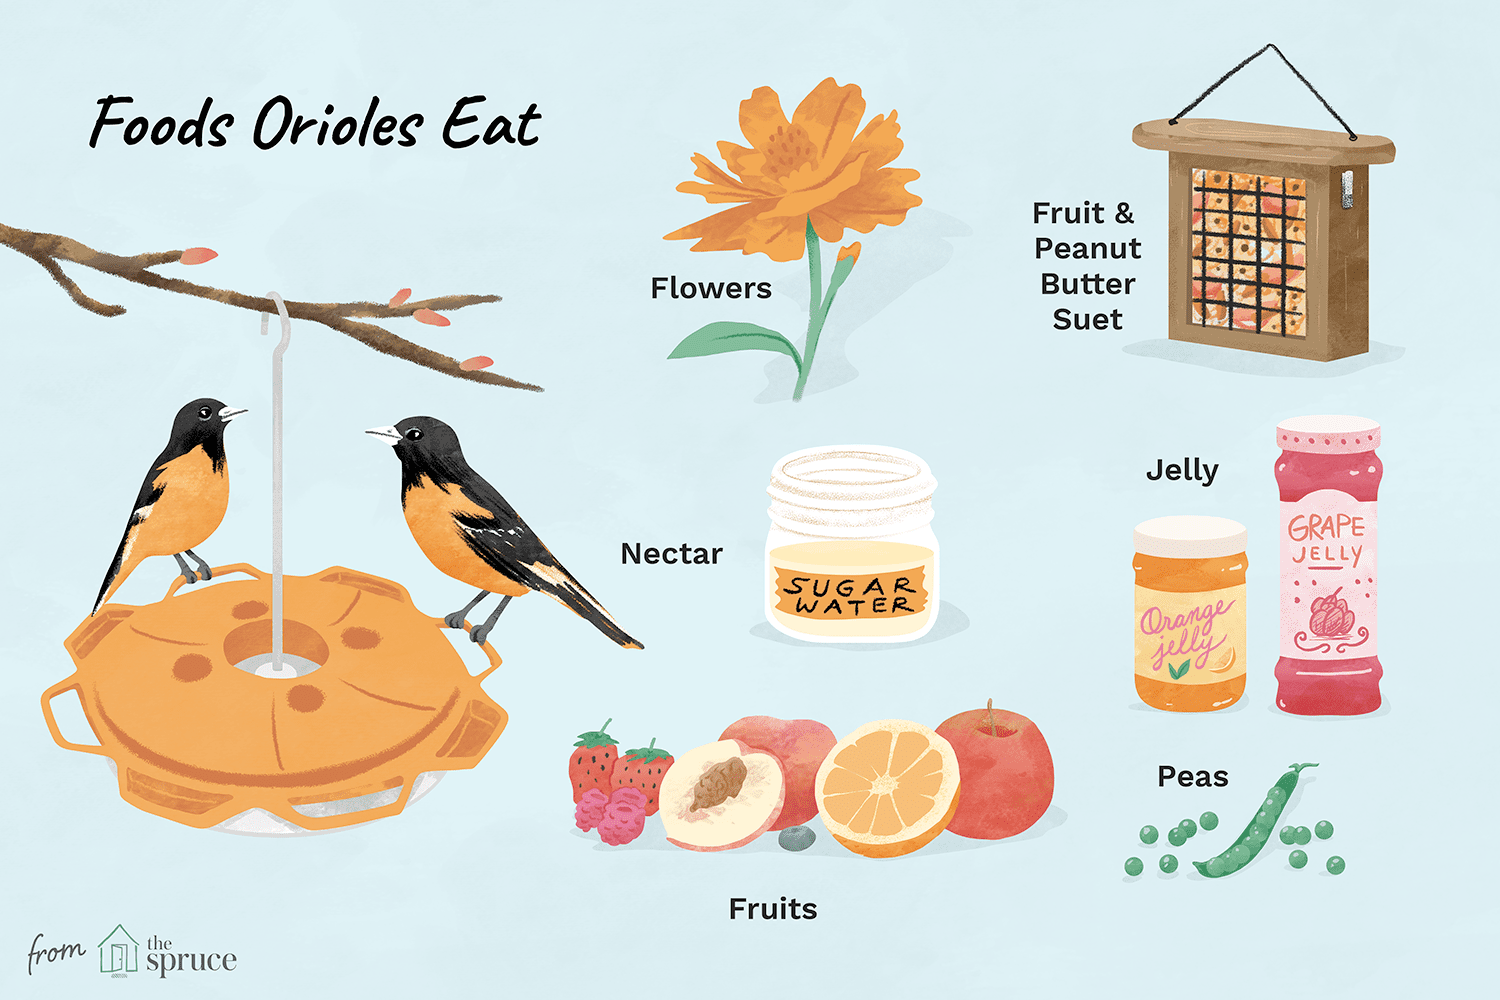 Illustration of orioles and the types of foods they eat